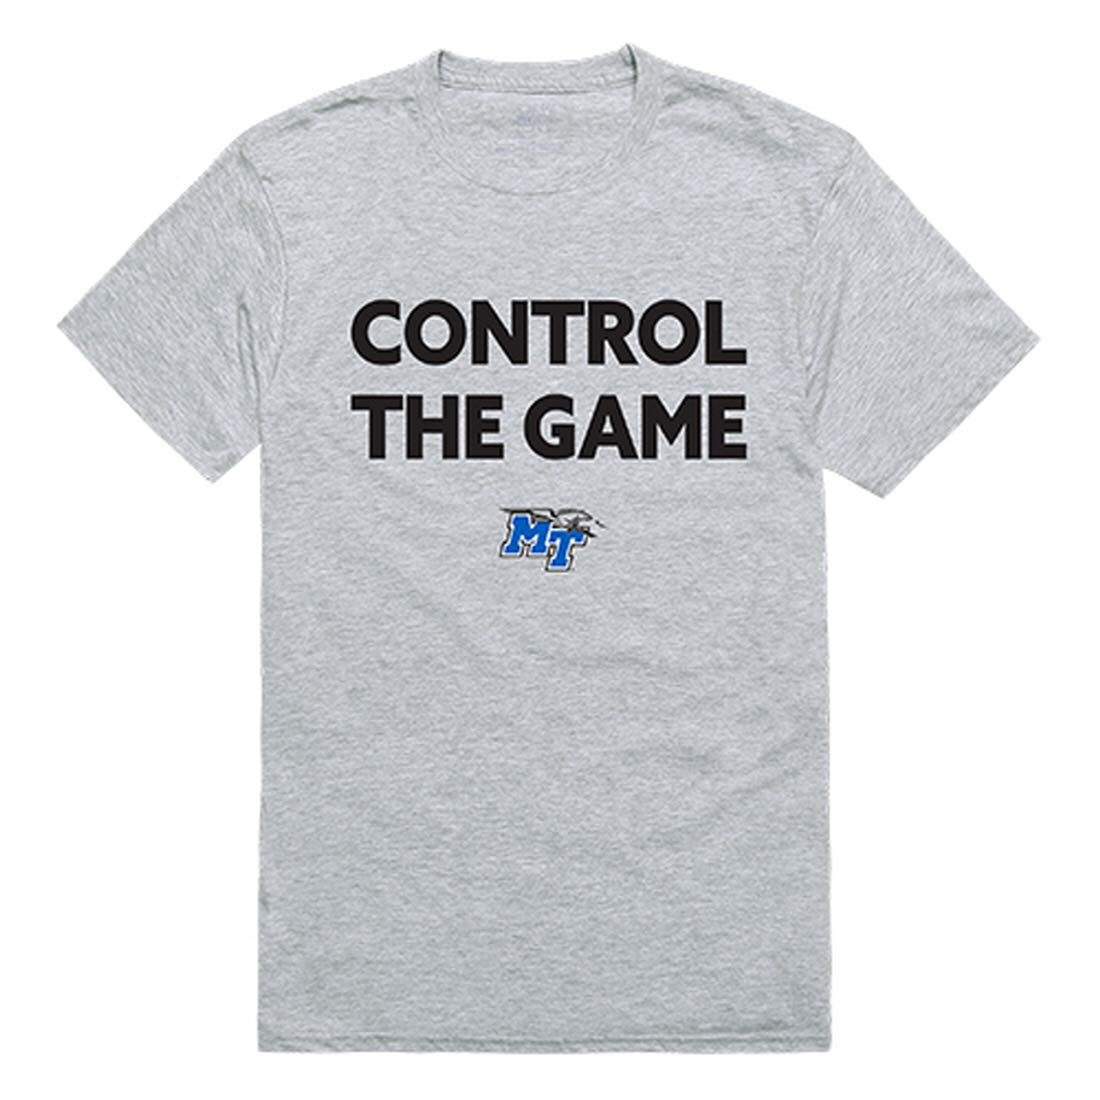 Mtsu Middle Tennessee State University S Ctg Tee Control The Game T Shirt